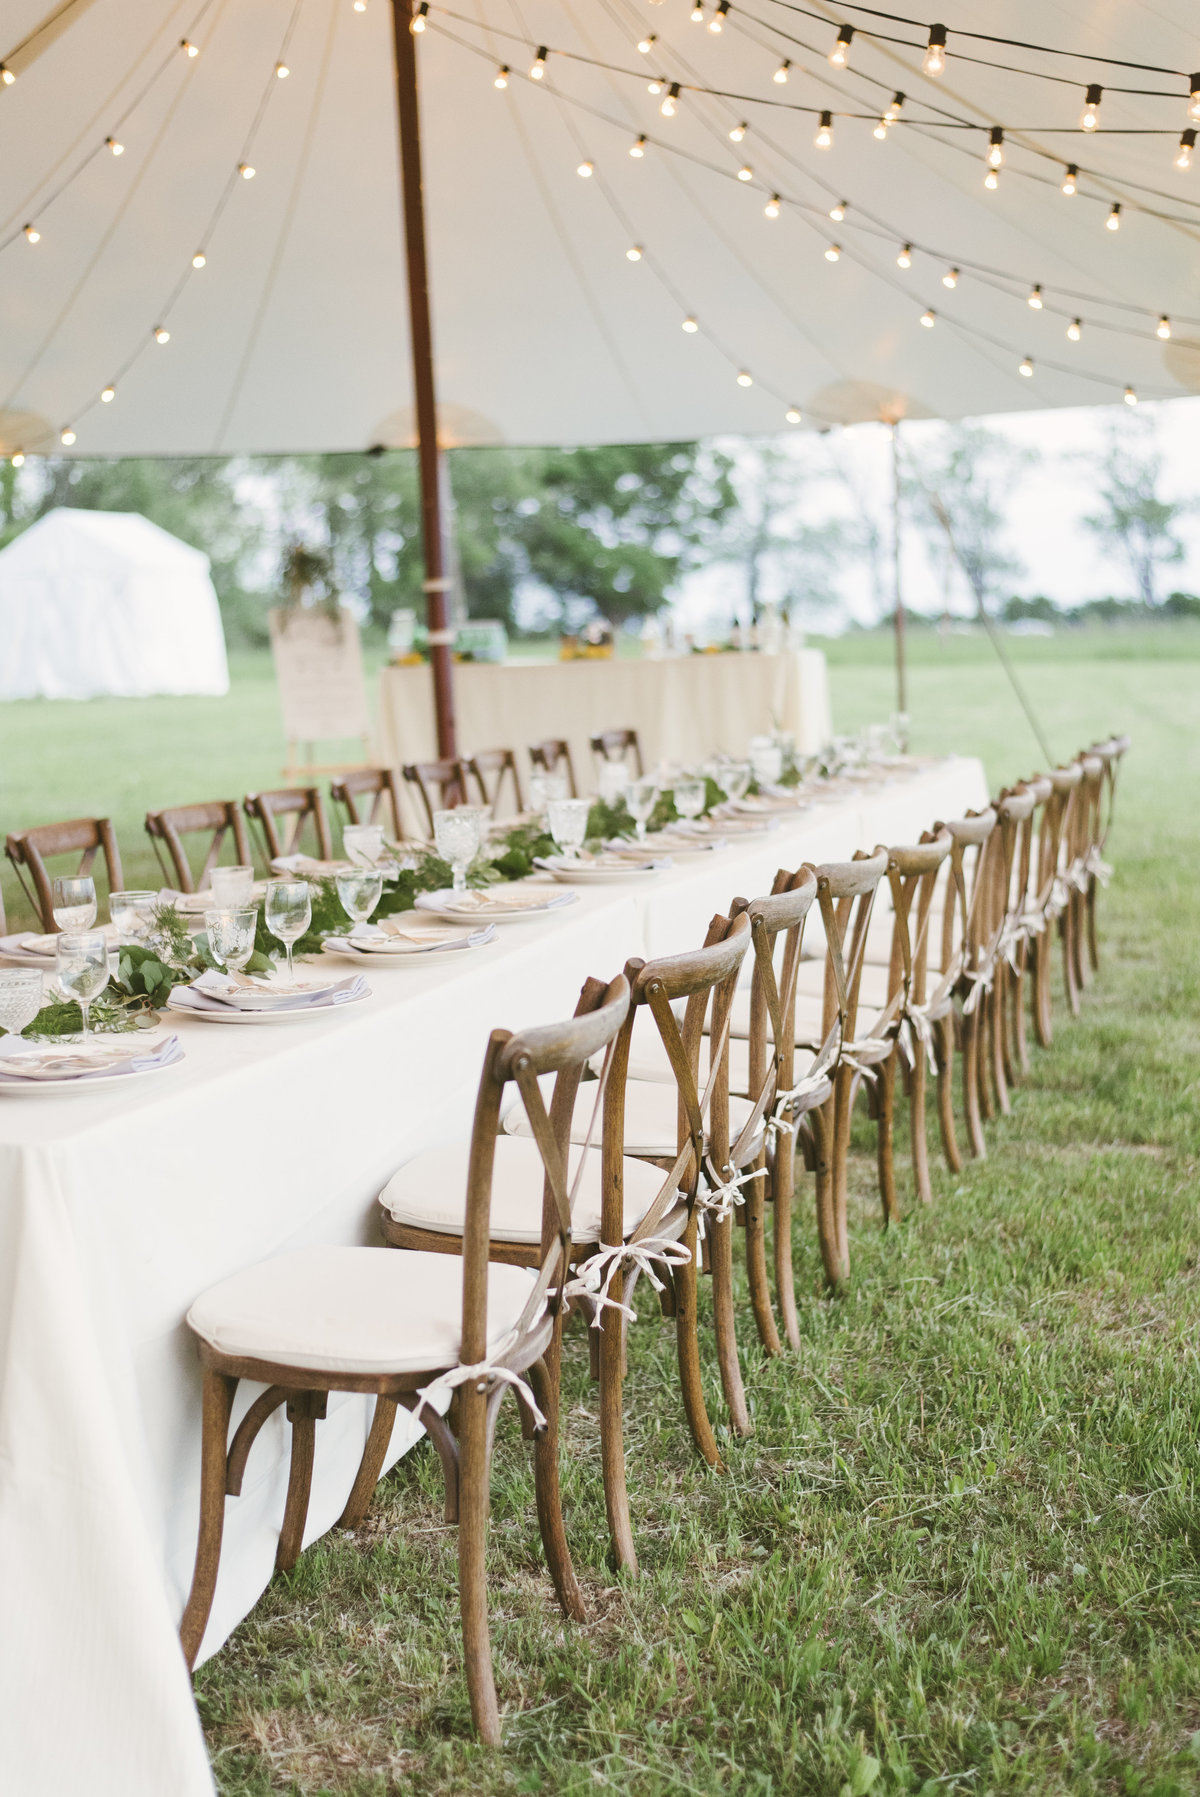 Monica-Relyea-Events-Alicia-King-Photography-Globe-Hill-Ronnybrook-Farm-Hudson-Valley-wedding-shoot-inspiration127